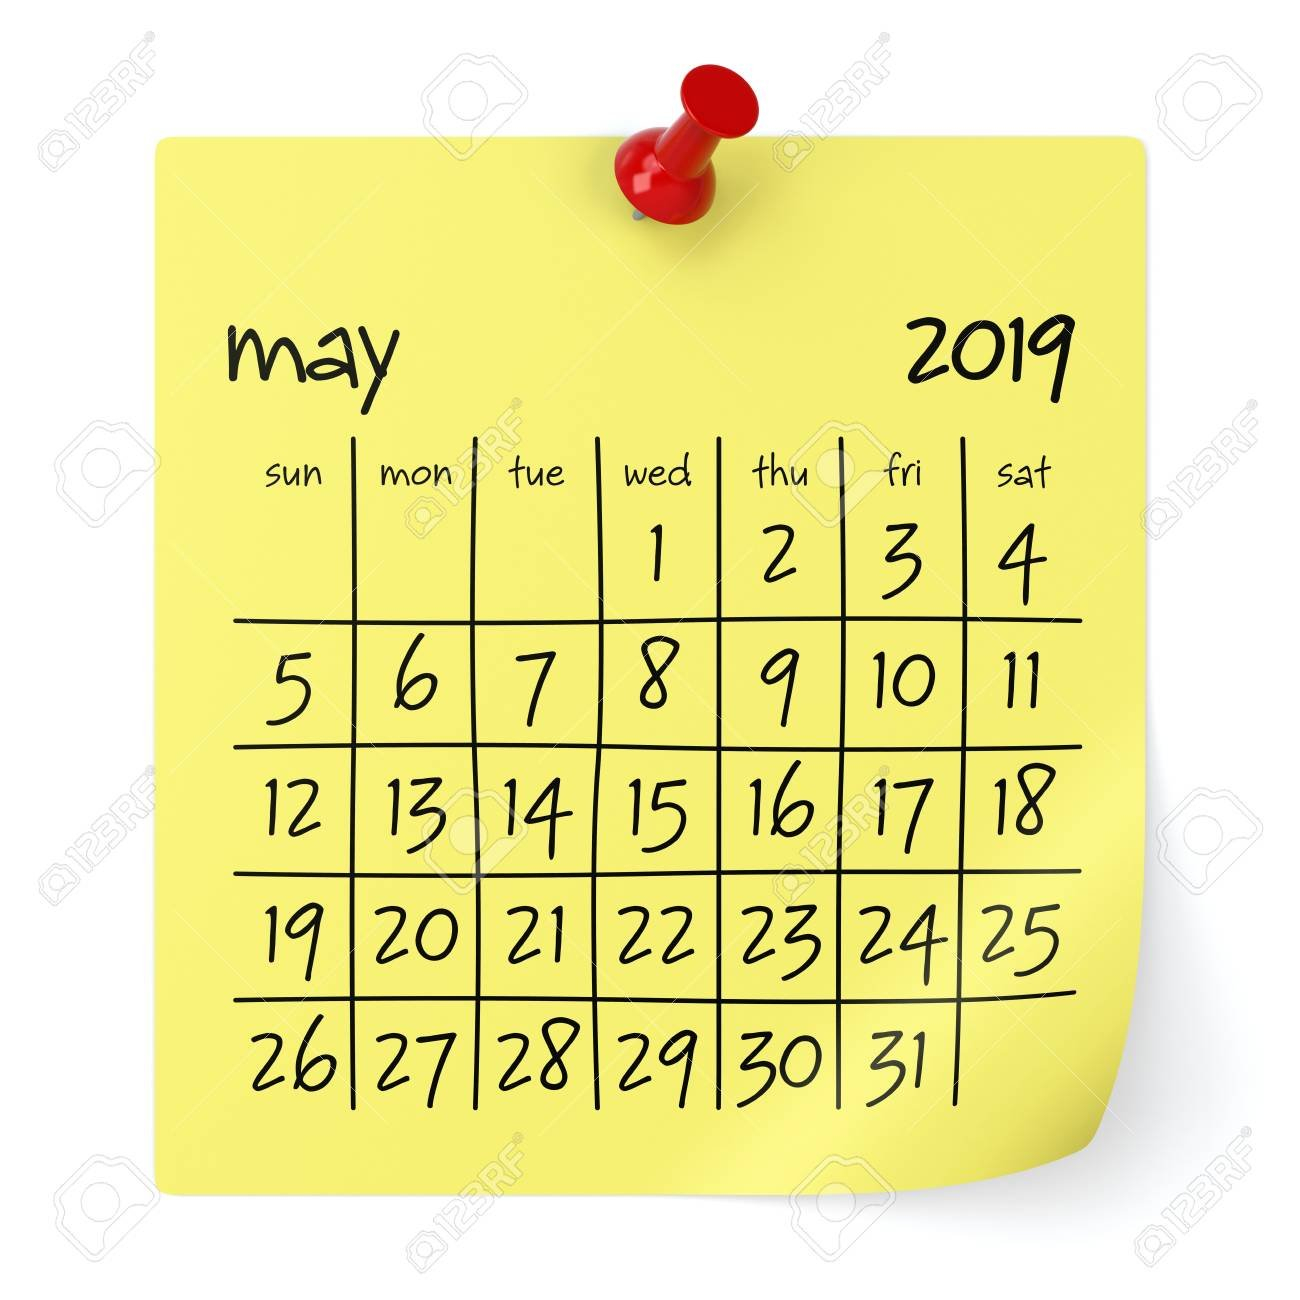 May 2019 Calendar. Isolated On White Background. 3D Illustration May 8 2019 Calendar